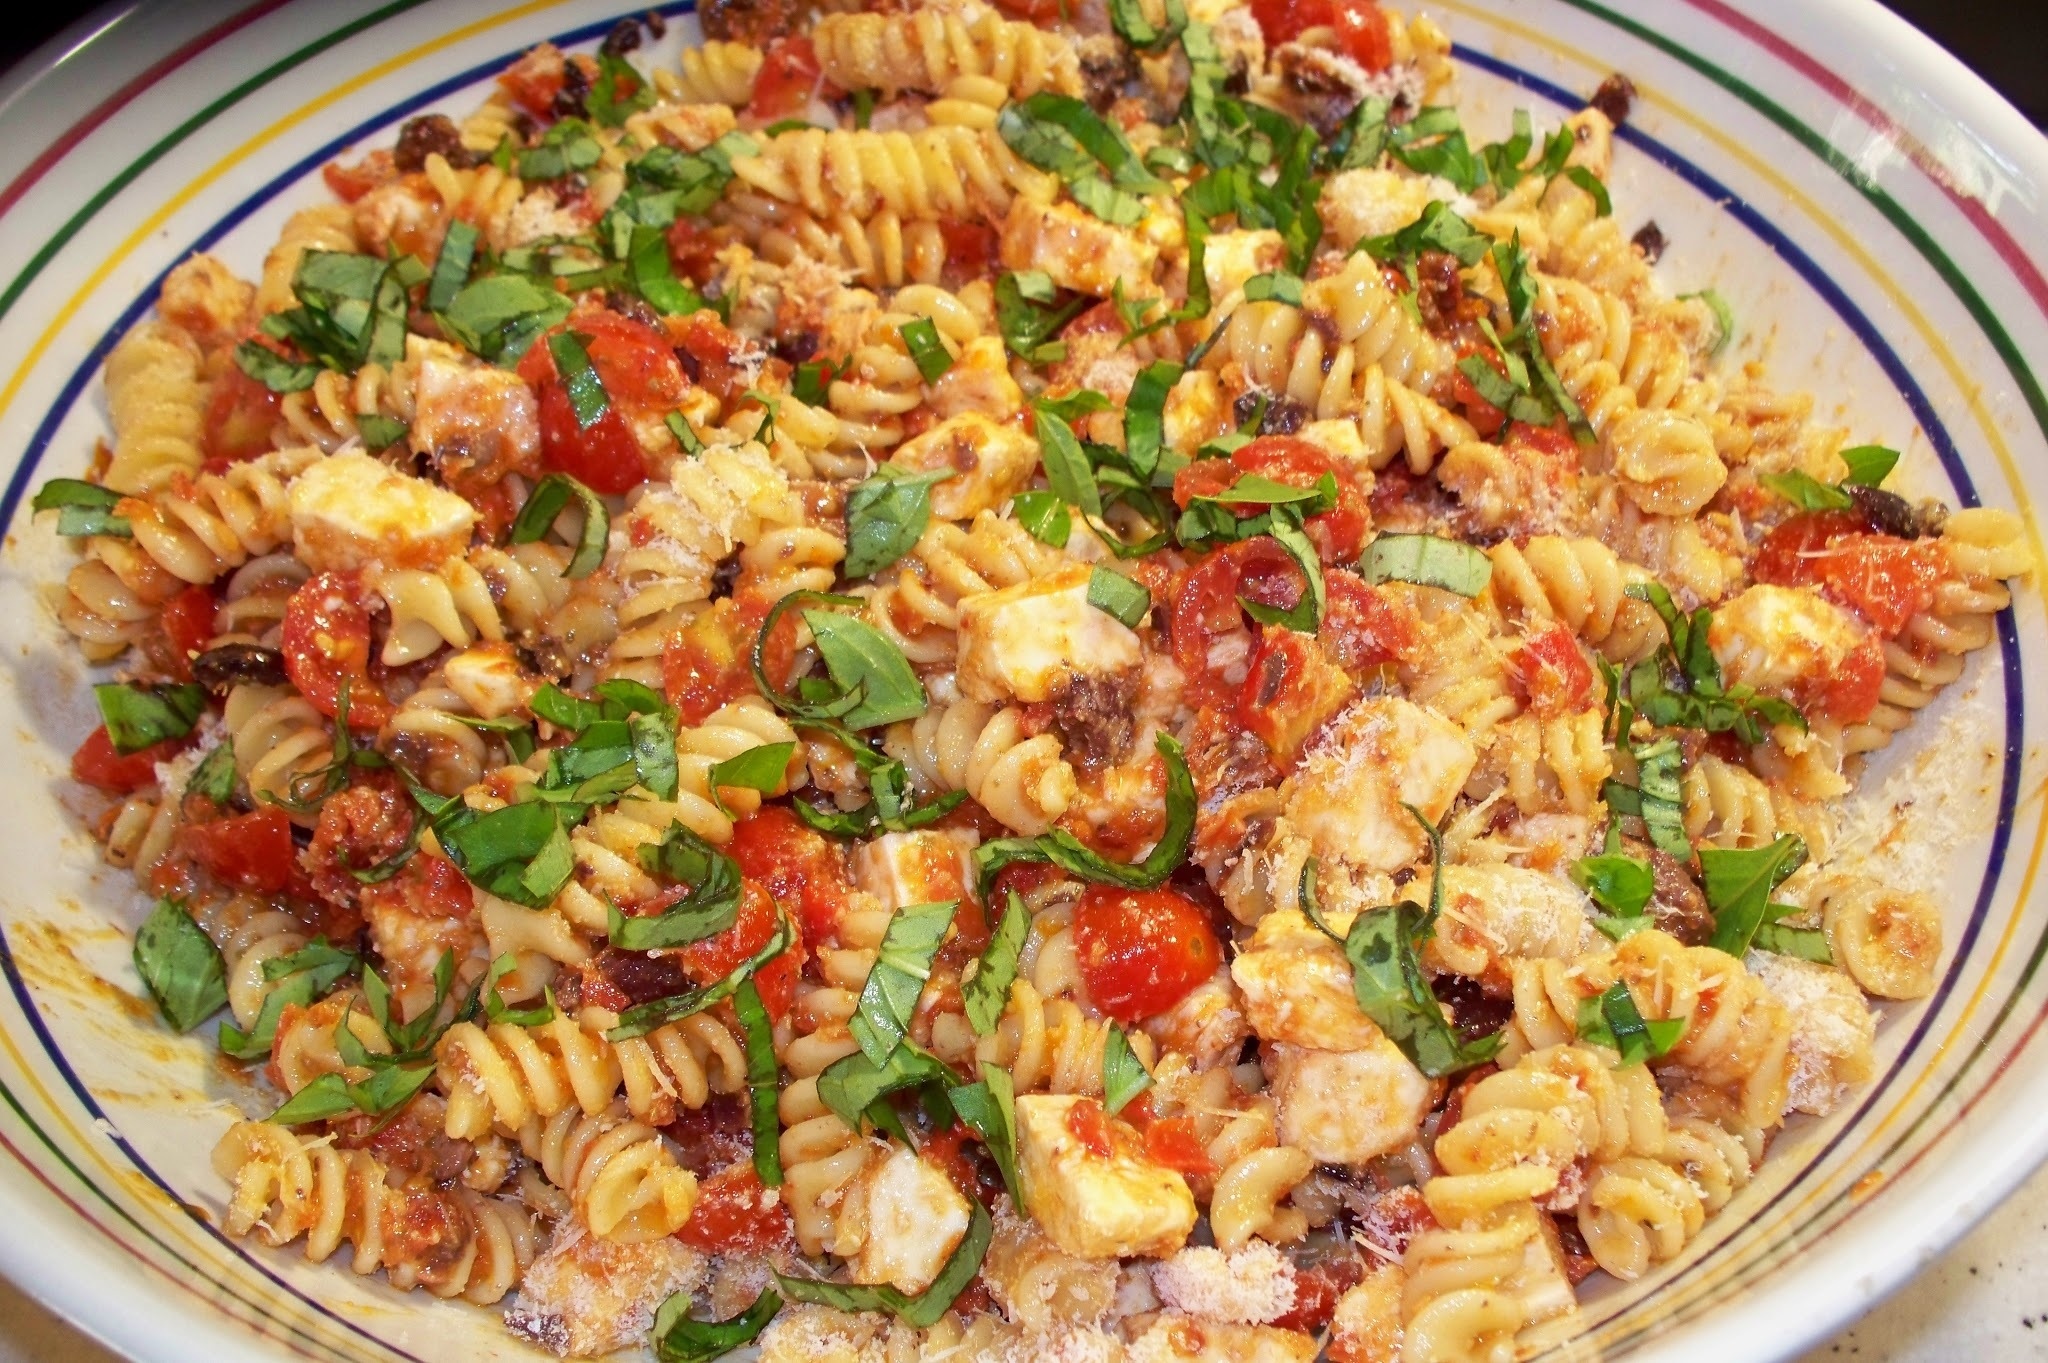 PASTA SALAD WITH SUN DRIED TOMATO DRESSING